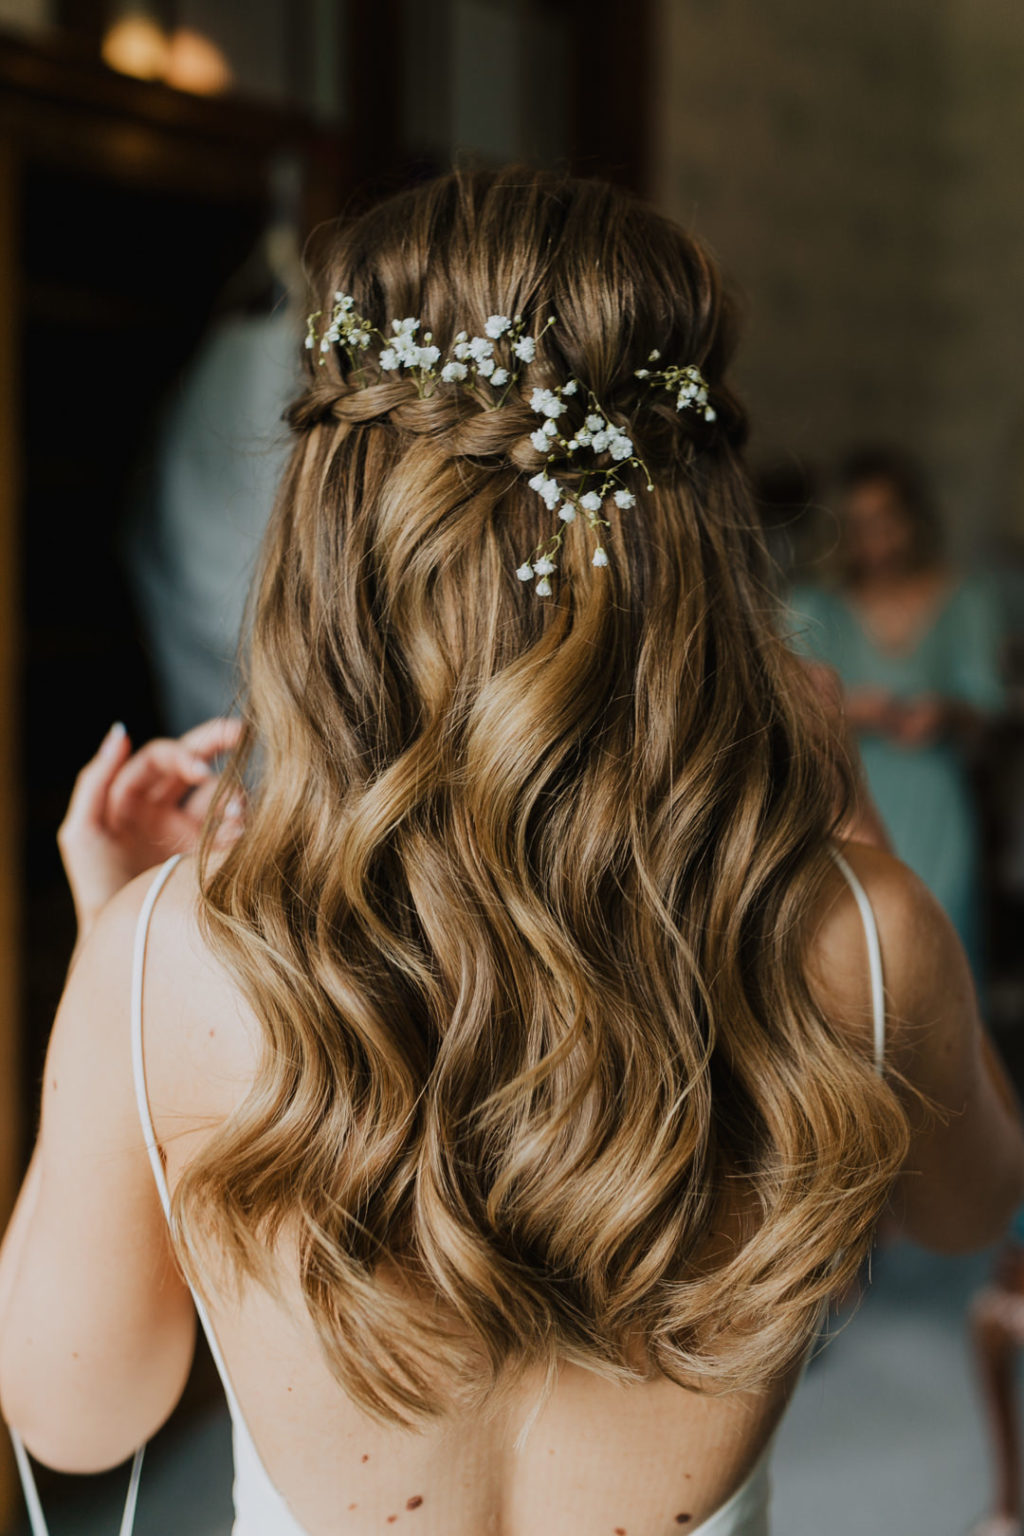 The wedding hairstyle was done with waves and a braided halo, with baby's breath